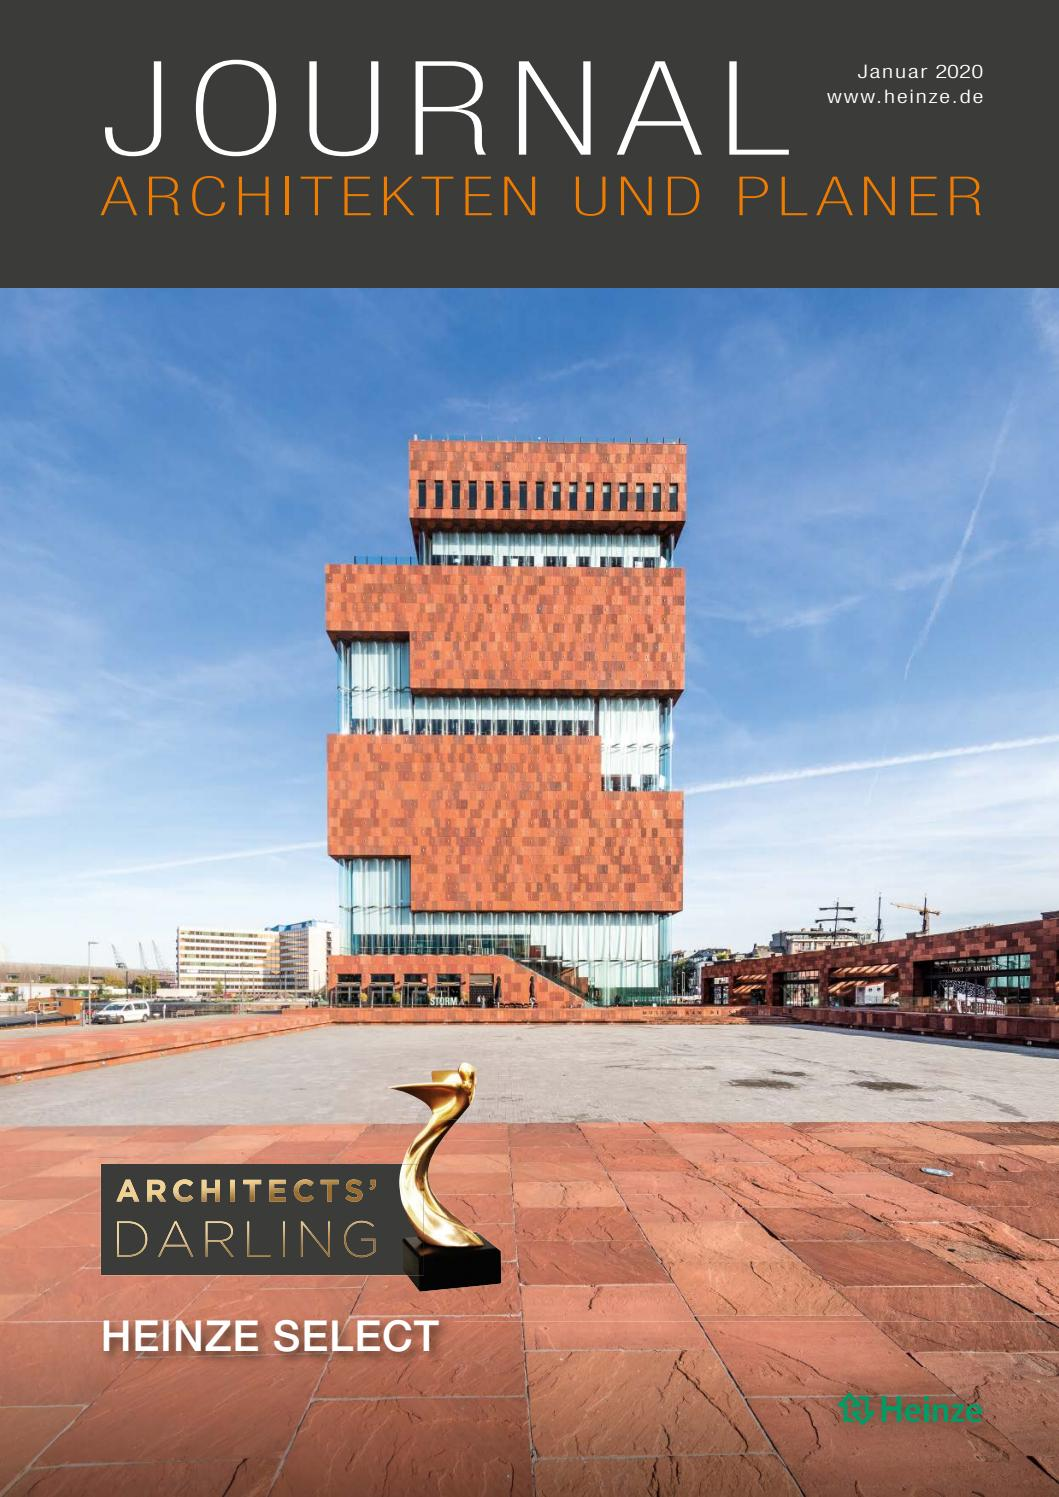 Journal Architekten Und Planer Januar 2020 By Heinze Gmbh Issuu